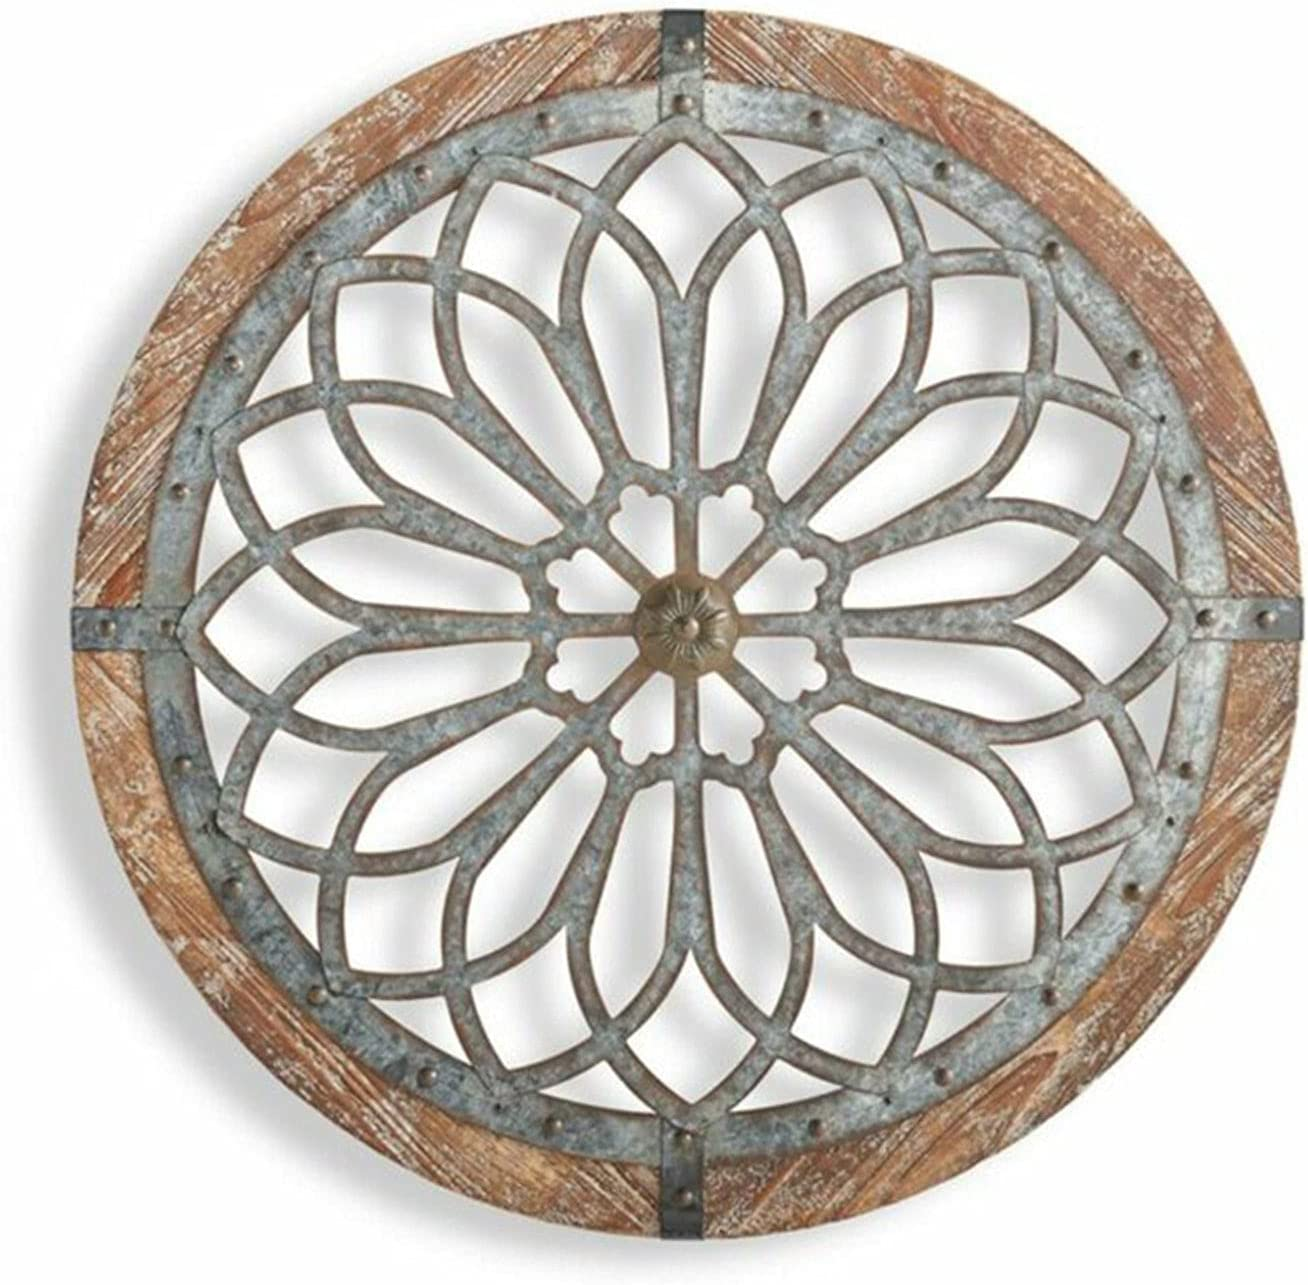 KHLRDK Round Wall Art Max 68% OFF Wooden Beauty products Ornament Shape Hanging Flower Dec